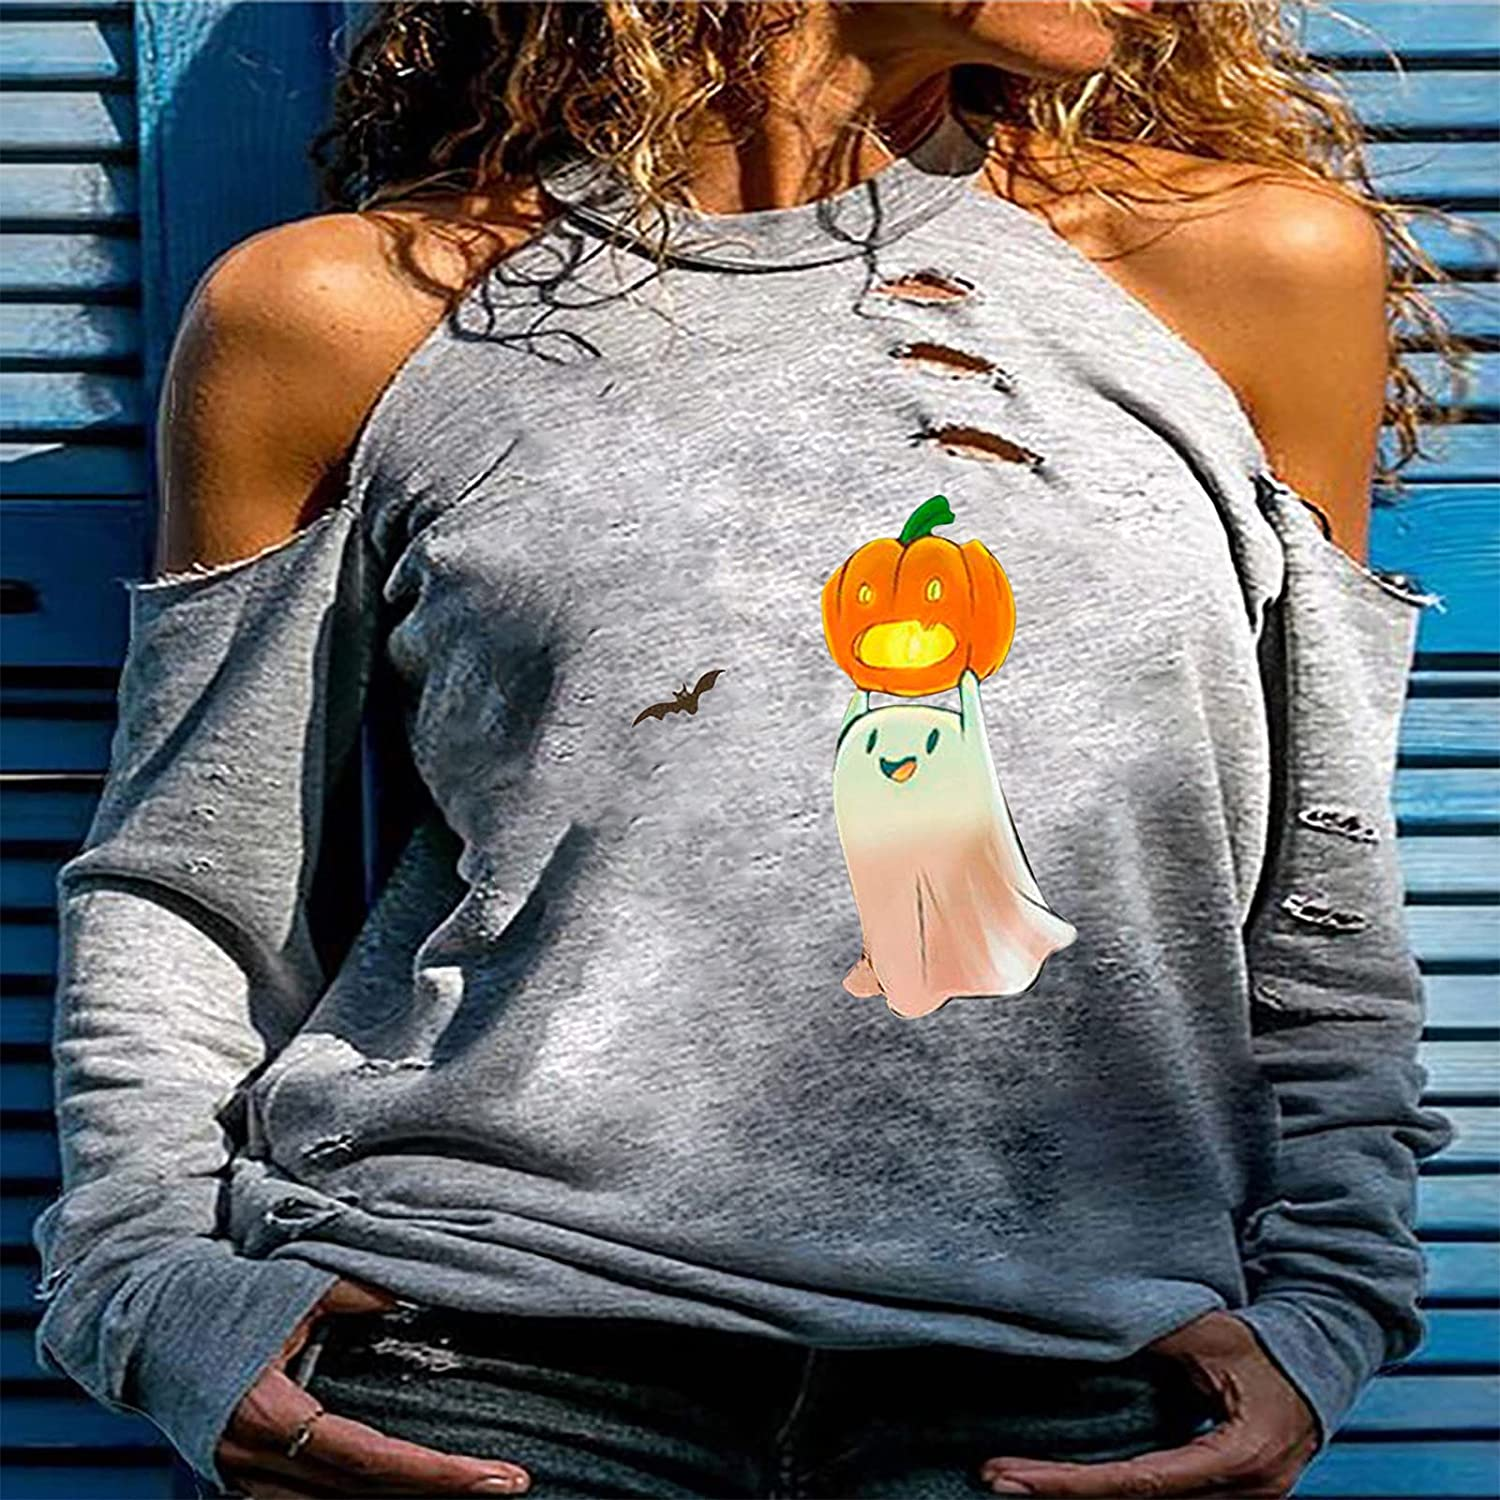 Women's Casual Loose Cold Shoulder Tops Halter Neck Pumpkin Ghost Bat Hollowed Out Long Sleeve Shirts